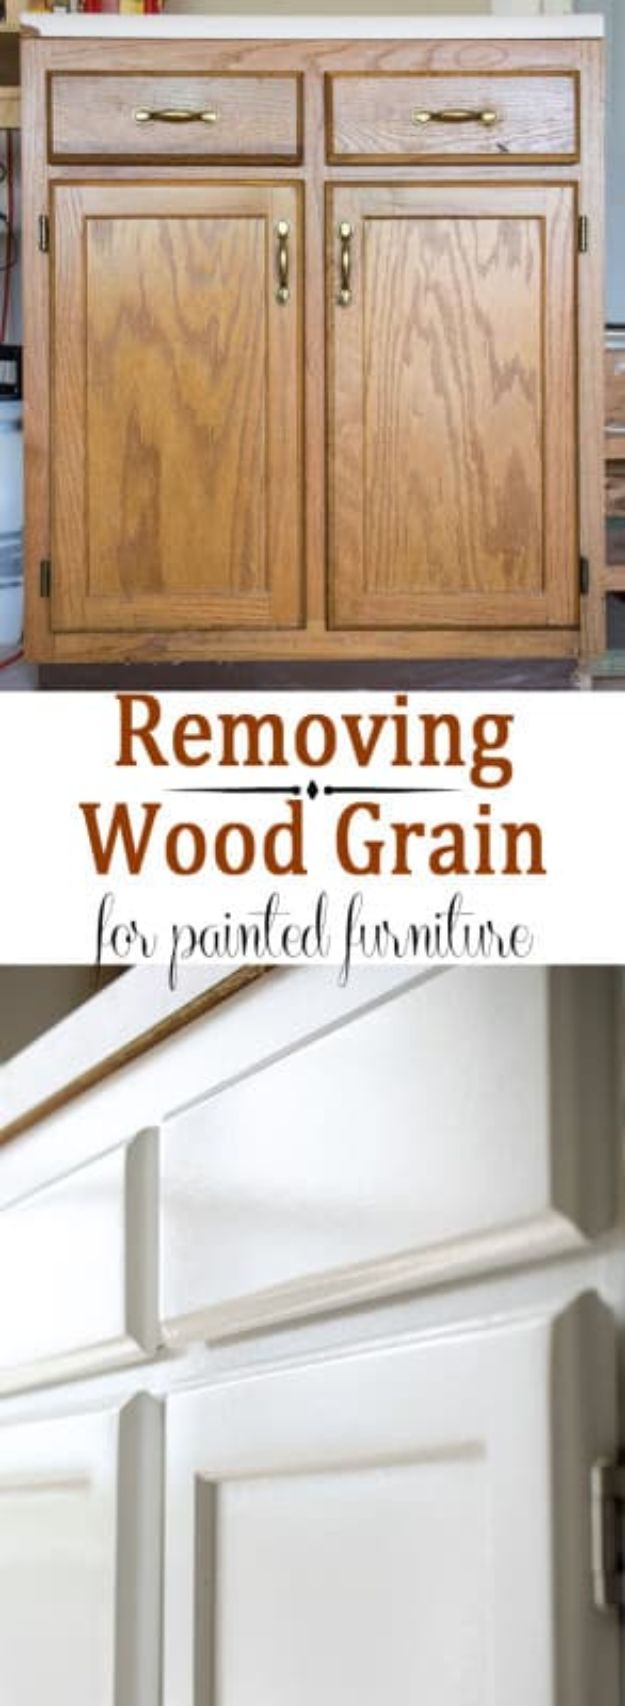 Cool Woodworking Tips - Remove Wood Grain Texture - Easy Woodworking Ideas, Woodworking Tips and Tricks, Woodworking Tips For Beginners, Basic Guide For Woodworking - Refinishing Wood, Sanding and Staining, Cleaning Wood and Upcycling Pallets #woodworking